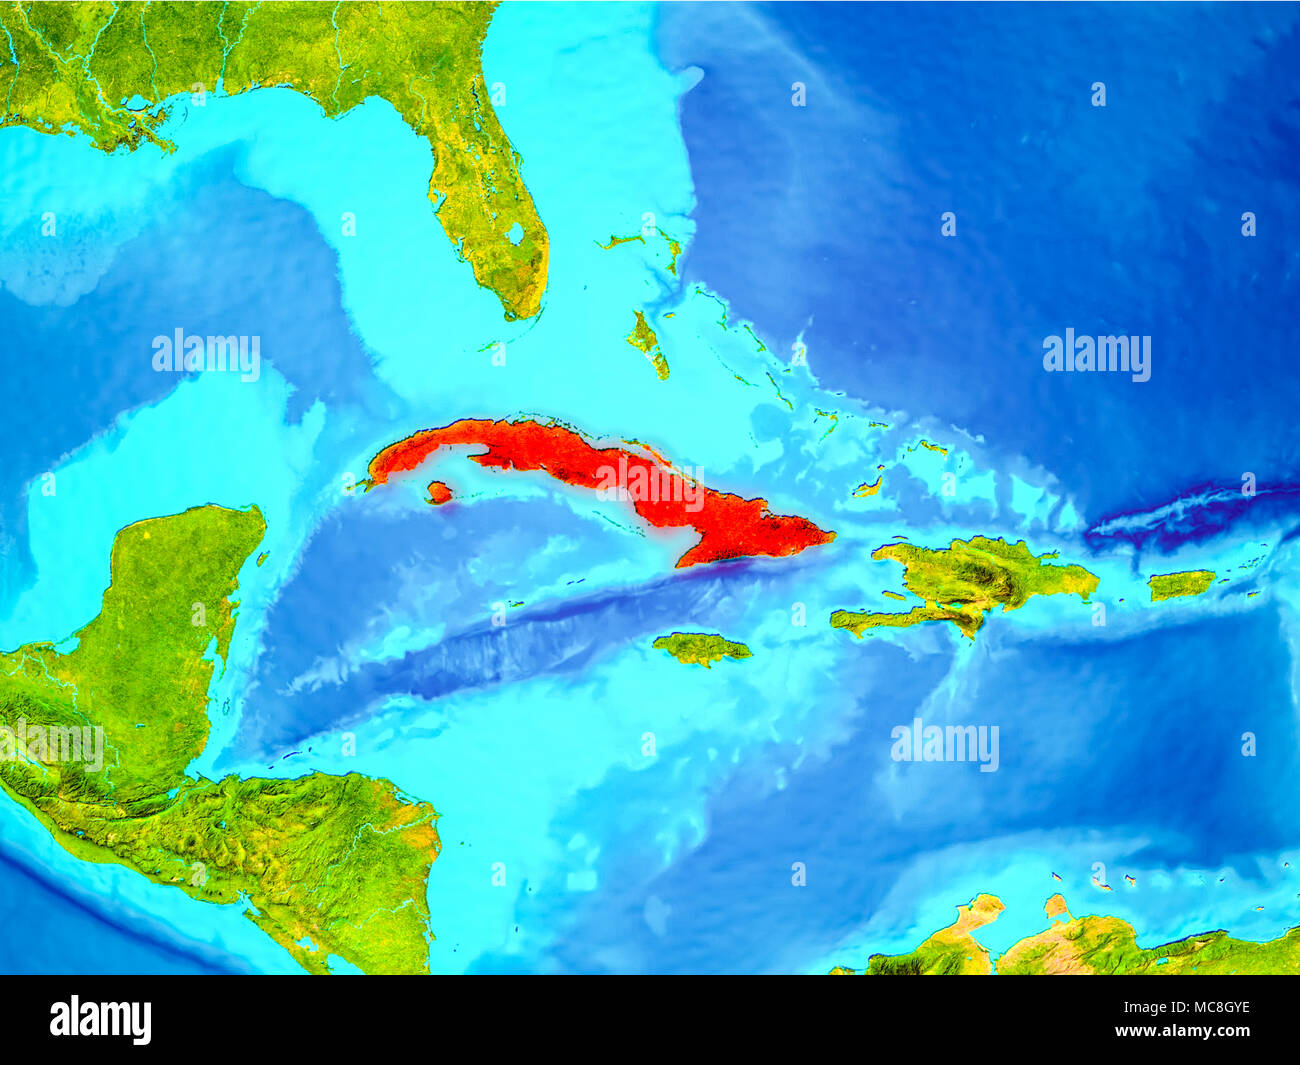 Map cuba stock photos map cuba stock images page 7 alamy cuba highlighted in red on planet earth 3d illustration elements of this image furnished gumiabroncs Image collections